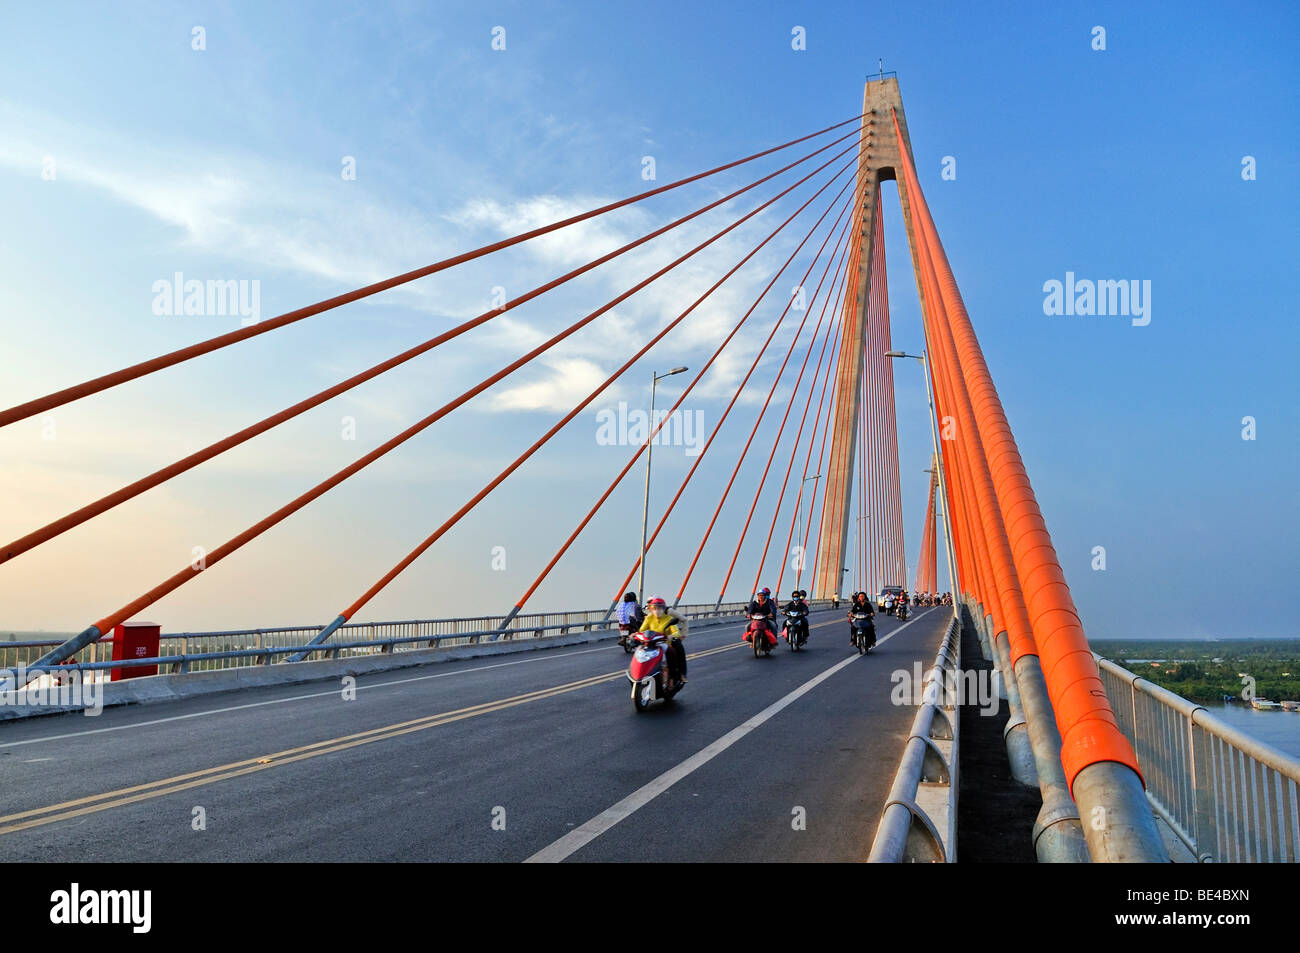 Large bridge crossing over the Mekong River, scooters on the road, My Tho, Mekong Delta, Vietnam, Asia - Stock Image